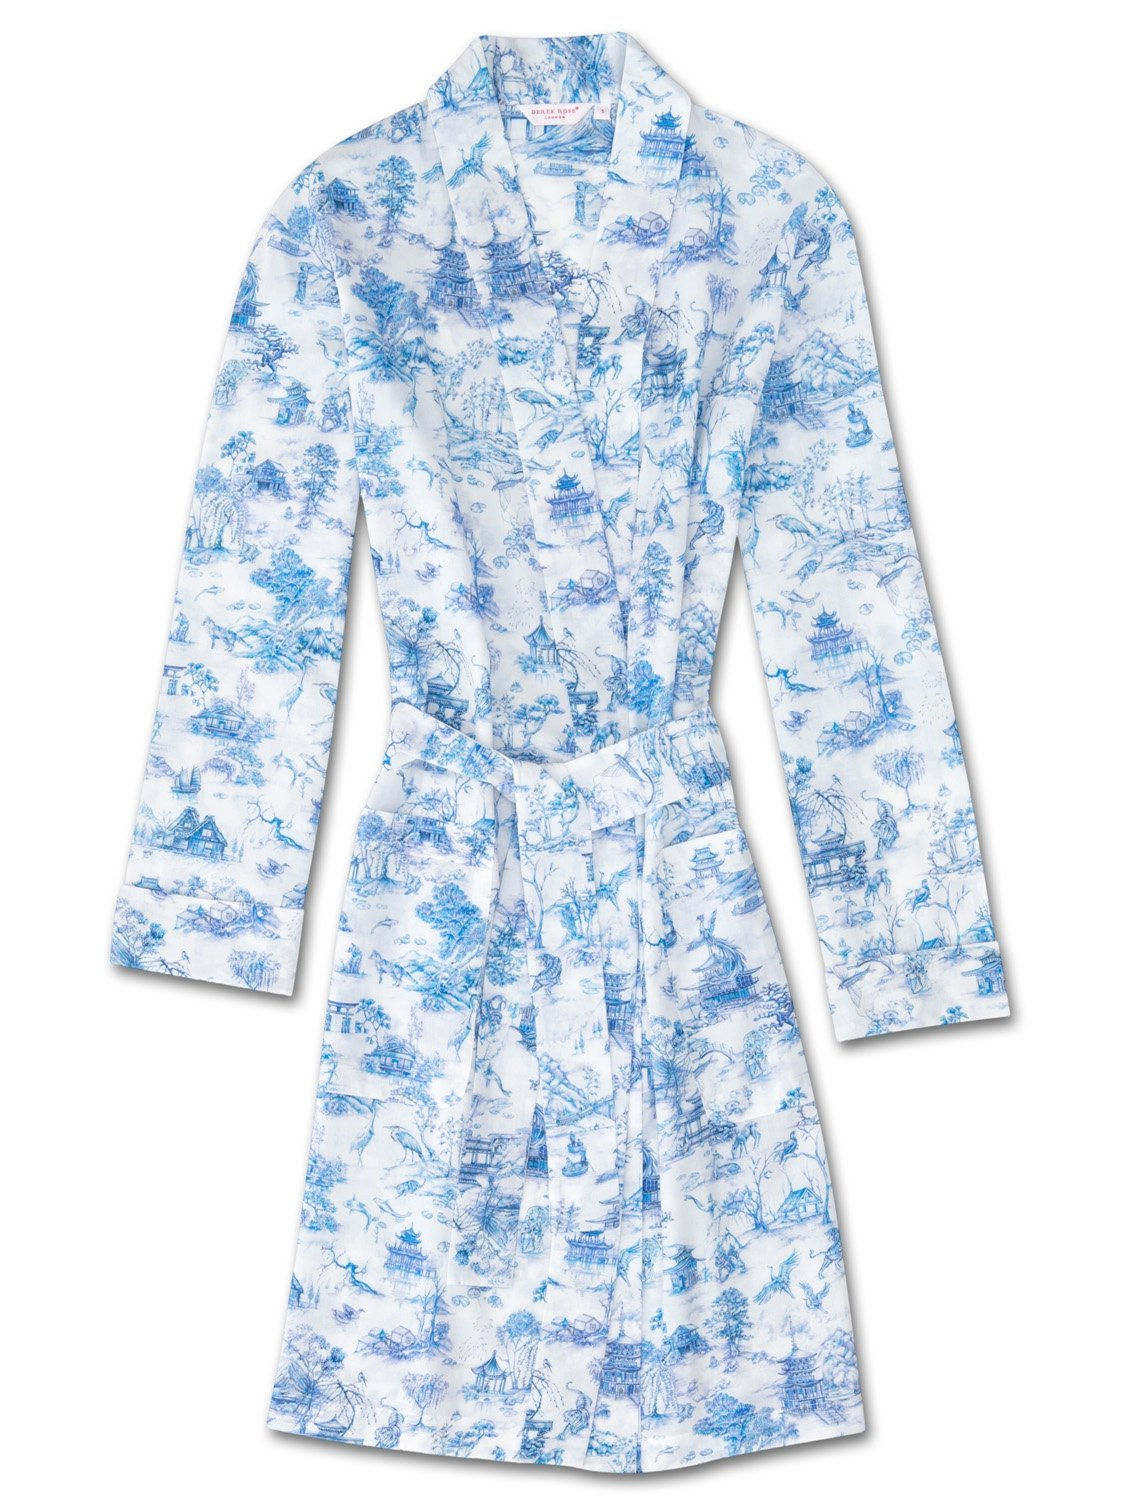 Women's Dressing Gown Ledbury 11 Cotton Batiste Blue